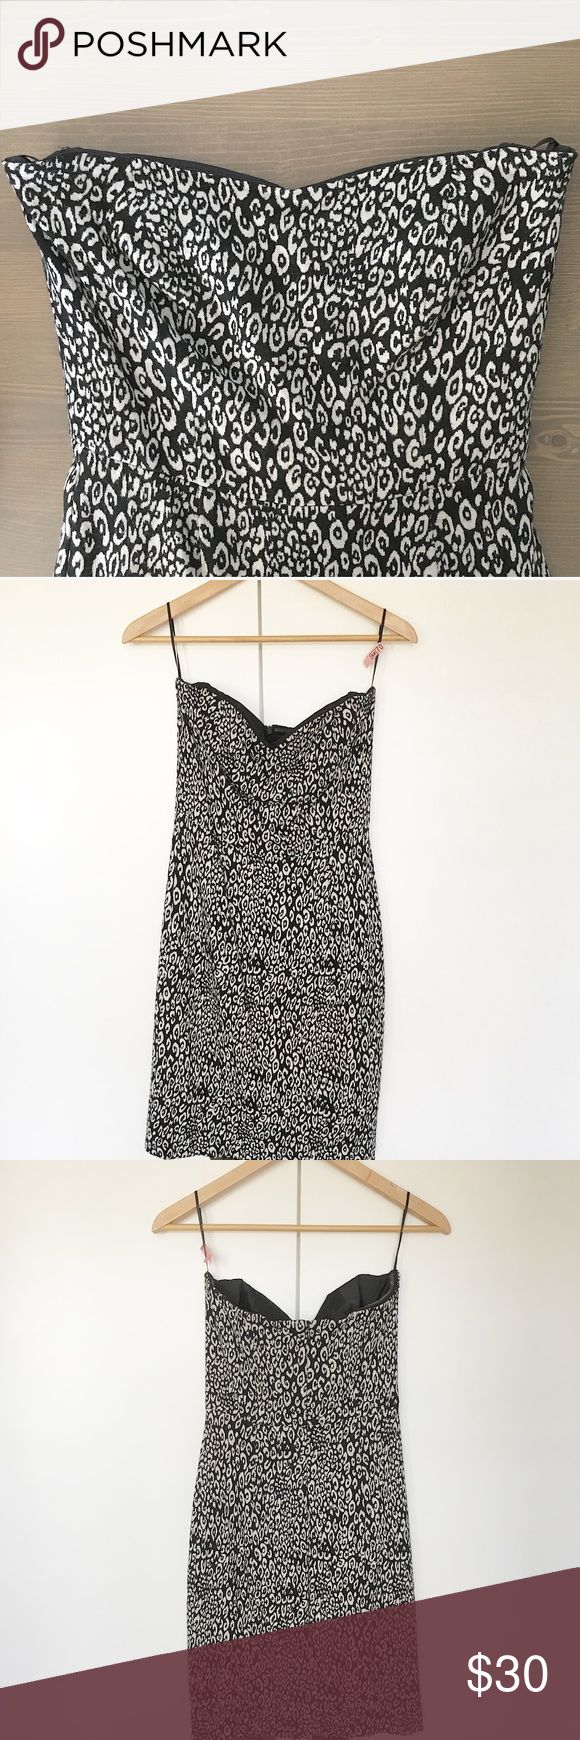 Trina Turk Leopard Print Dress EUC. Worn once. Strapless bodycon dress. Subtle sweetheart neckline. Knee length. Material is comfortable and so soft. Top has built in boning on sides to help maintain shape. Black and white leopard print. Excellent for a night out with your fave strappy heels. Brand is Trina Turk. NOT Zara, used for exposure.  Reasonable offers considered. Please ask questions. 🚫Holds/Trades/Modeling/PayPal🚫 Zara Dresses Strapless